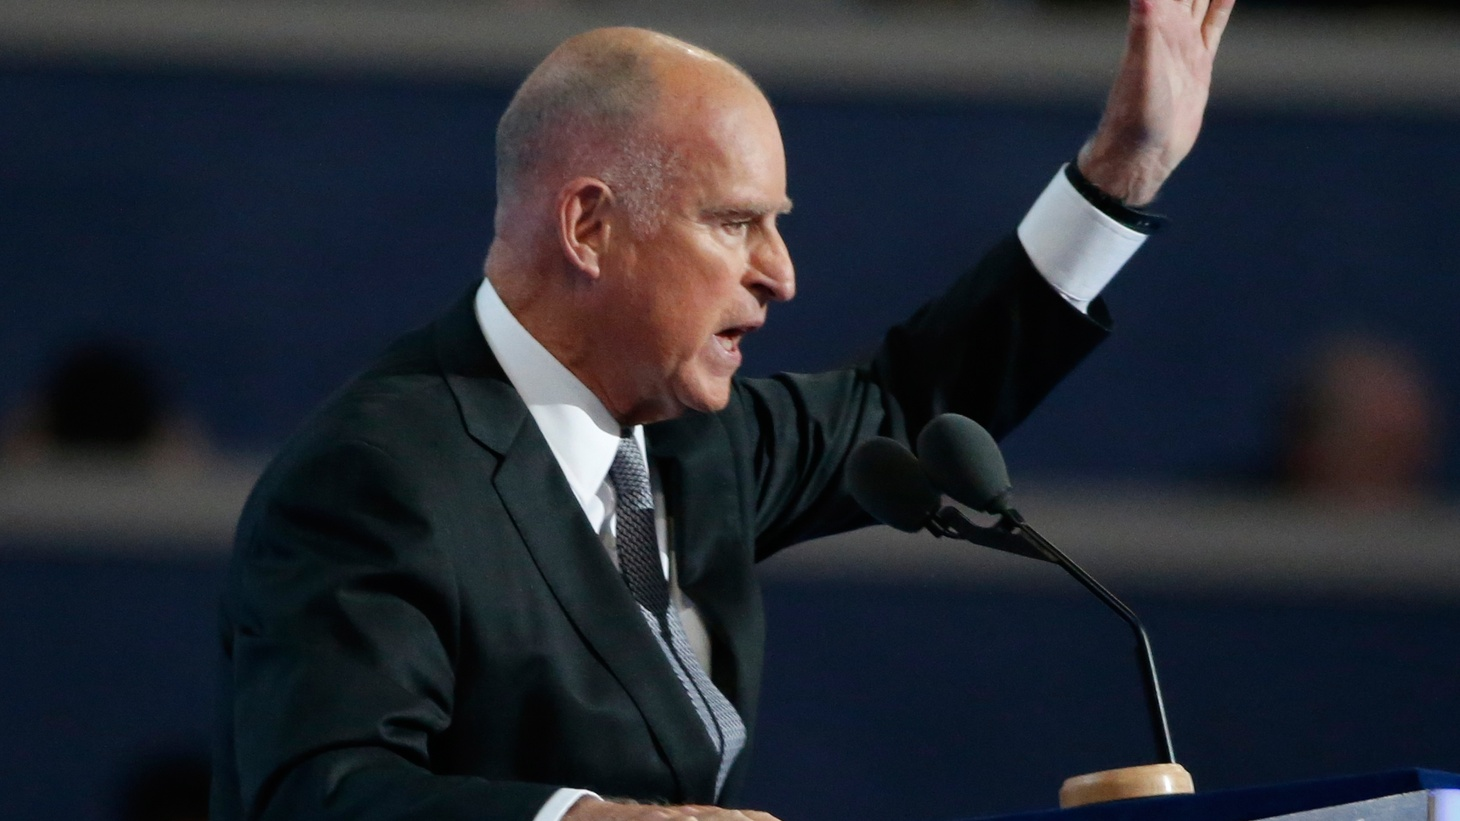 In his annual State of the State address, Governor Jerry Brown talked about ways California will resist President Trump's agenda. He did not mention the state's projected $1.6 billion budget deficit. We get a debrief of Brown's address and his budget proposal.